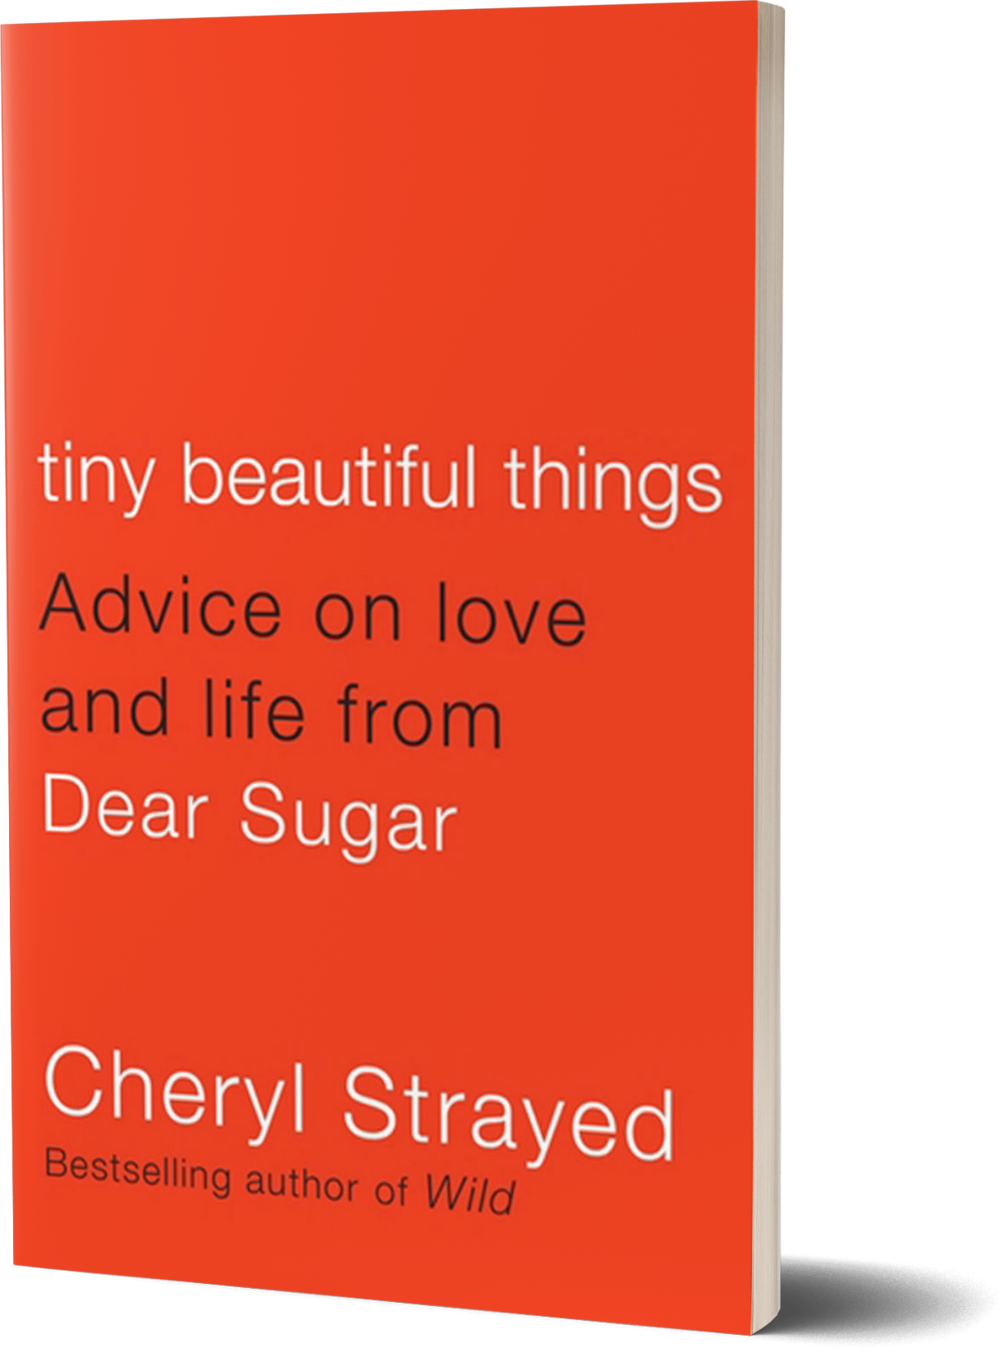 tiny beautiful things advice on love and life.png